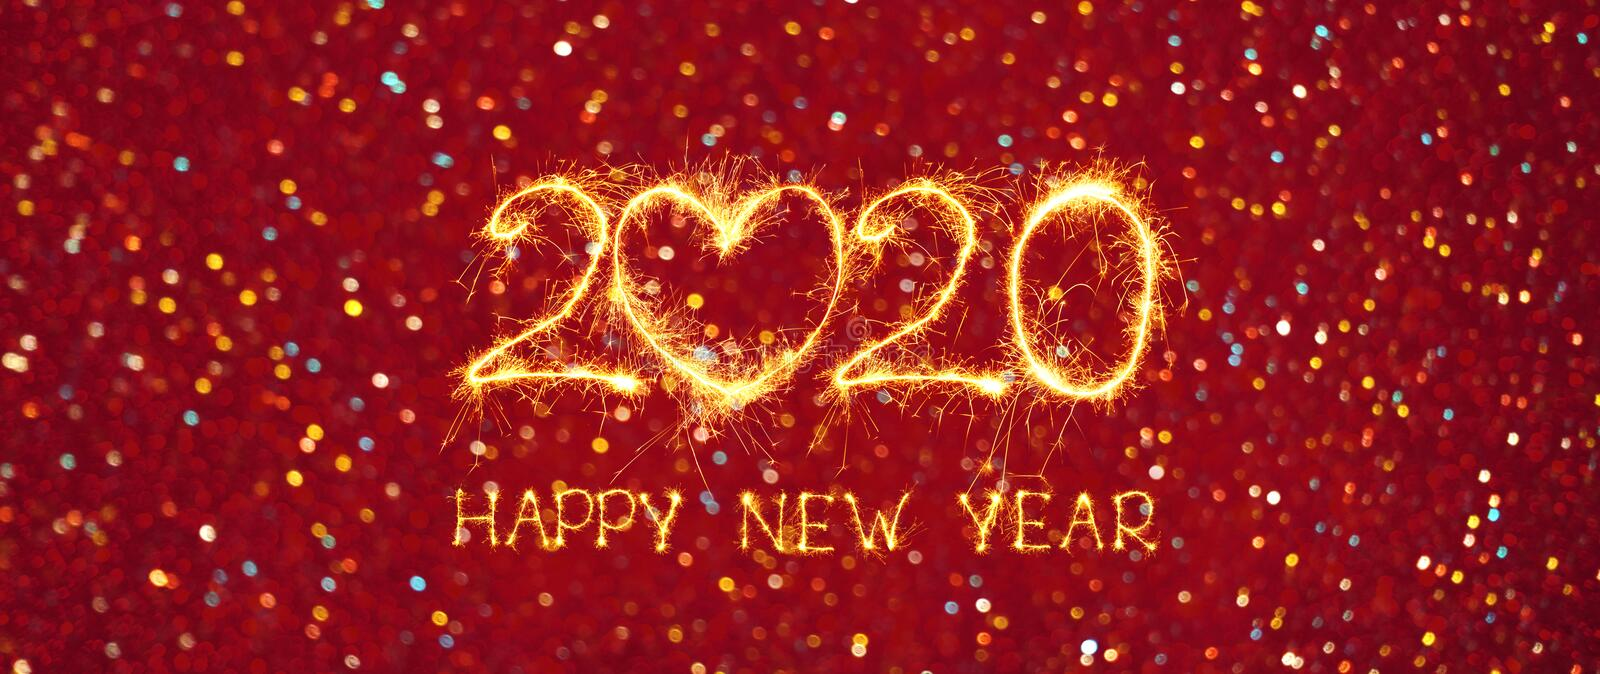 Wide Angle Greeting card Happy New Year 2020 royalty free stock photography